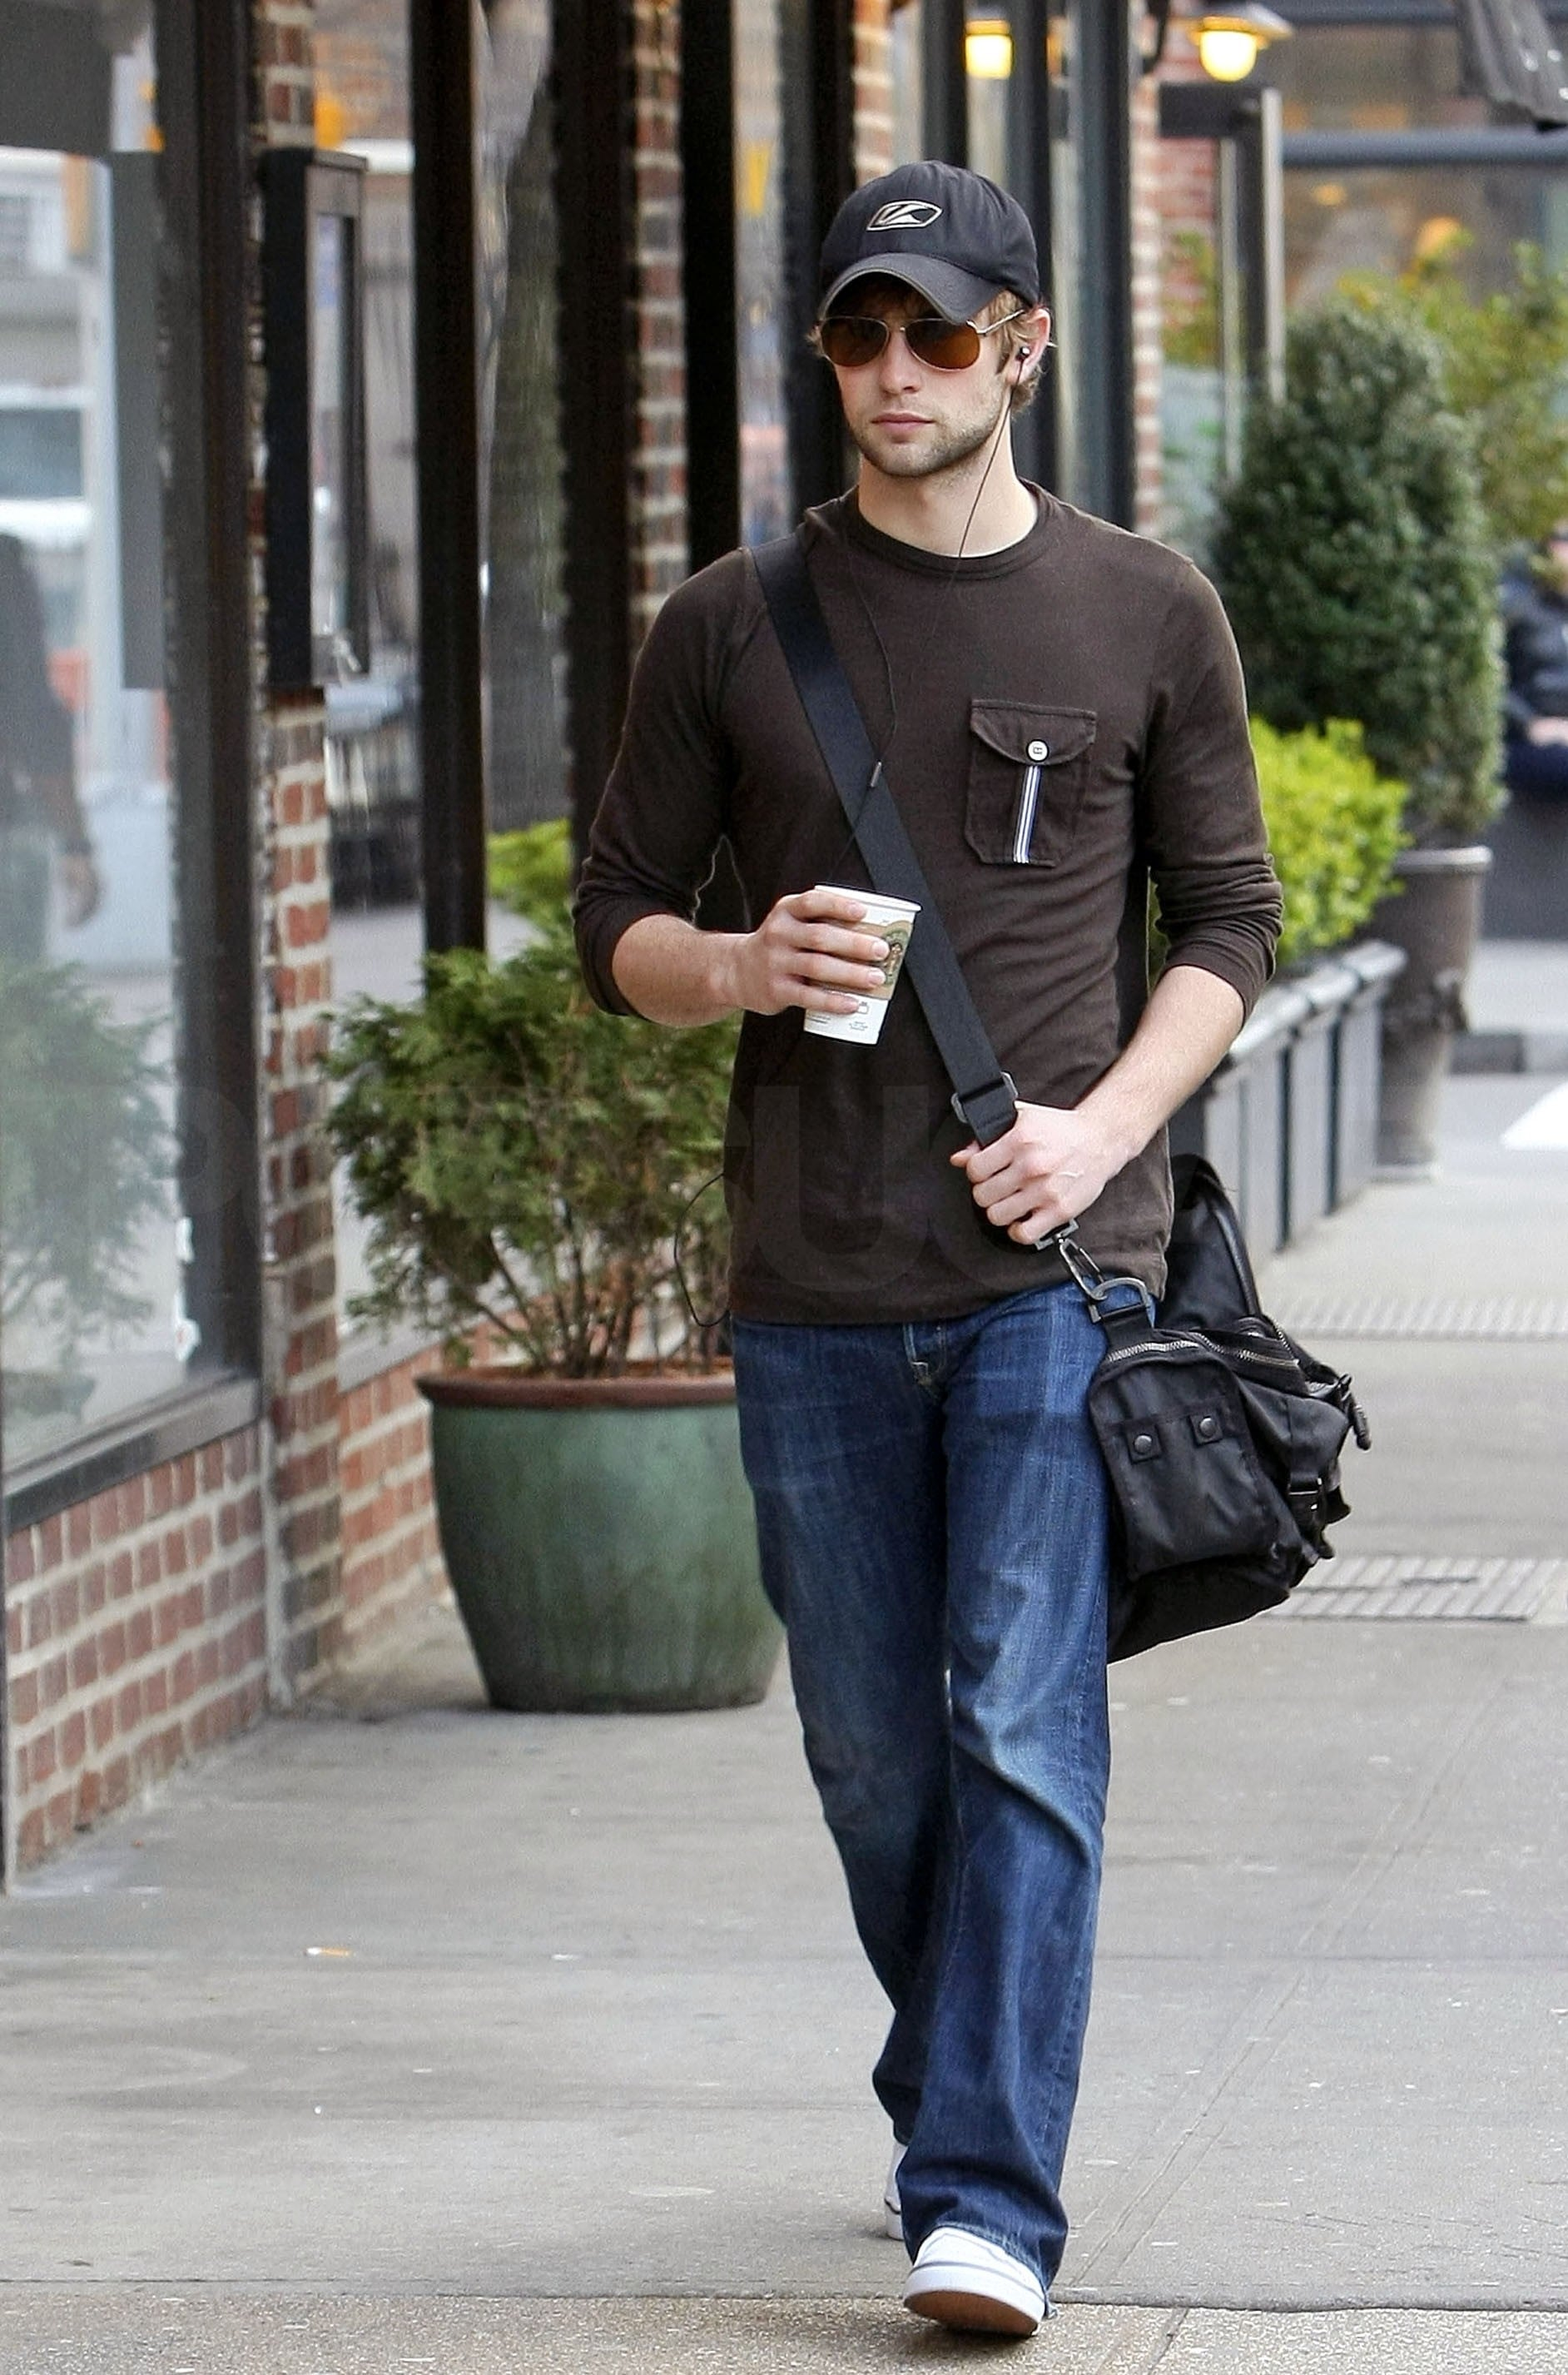 photos of gossip girl u0026 39 s chace crawford out in nyc